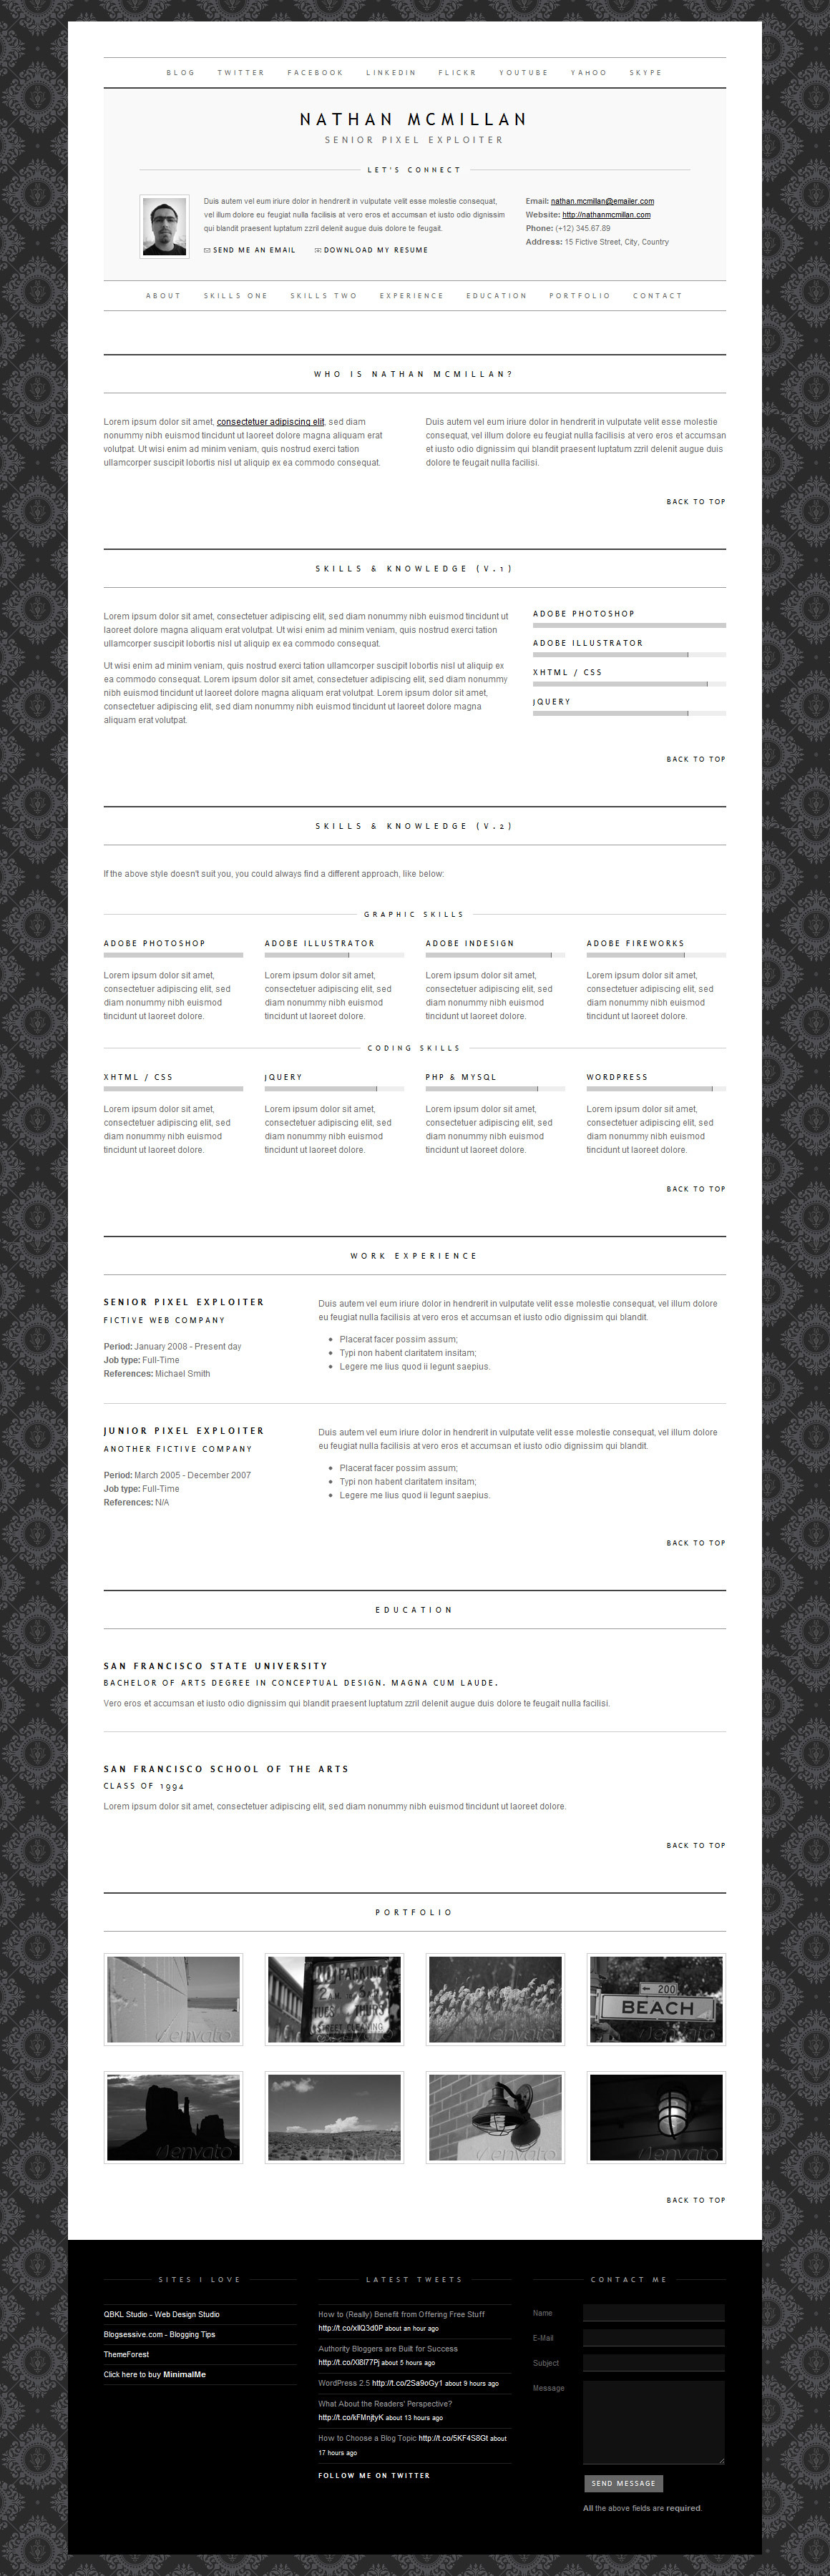 MinimalMe - Minimal HTML CV / Resume Template - The packed index.html containing the most useful combinations of styles, functionality and possible resume sections.